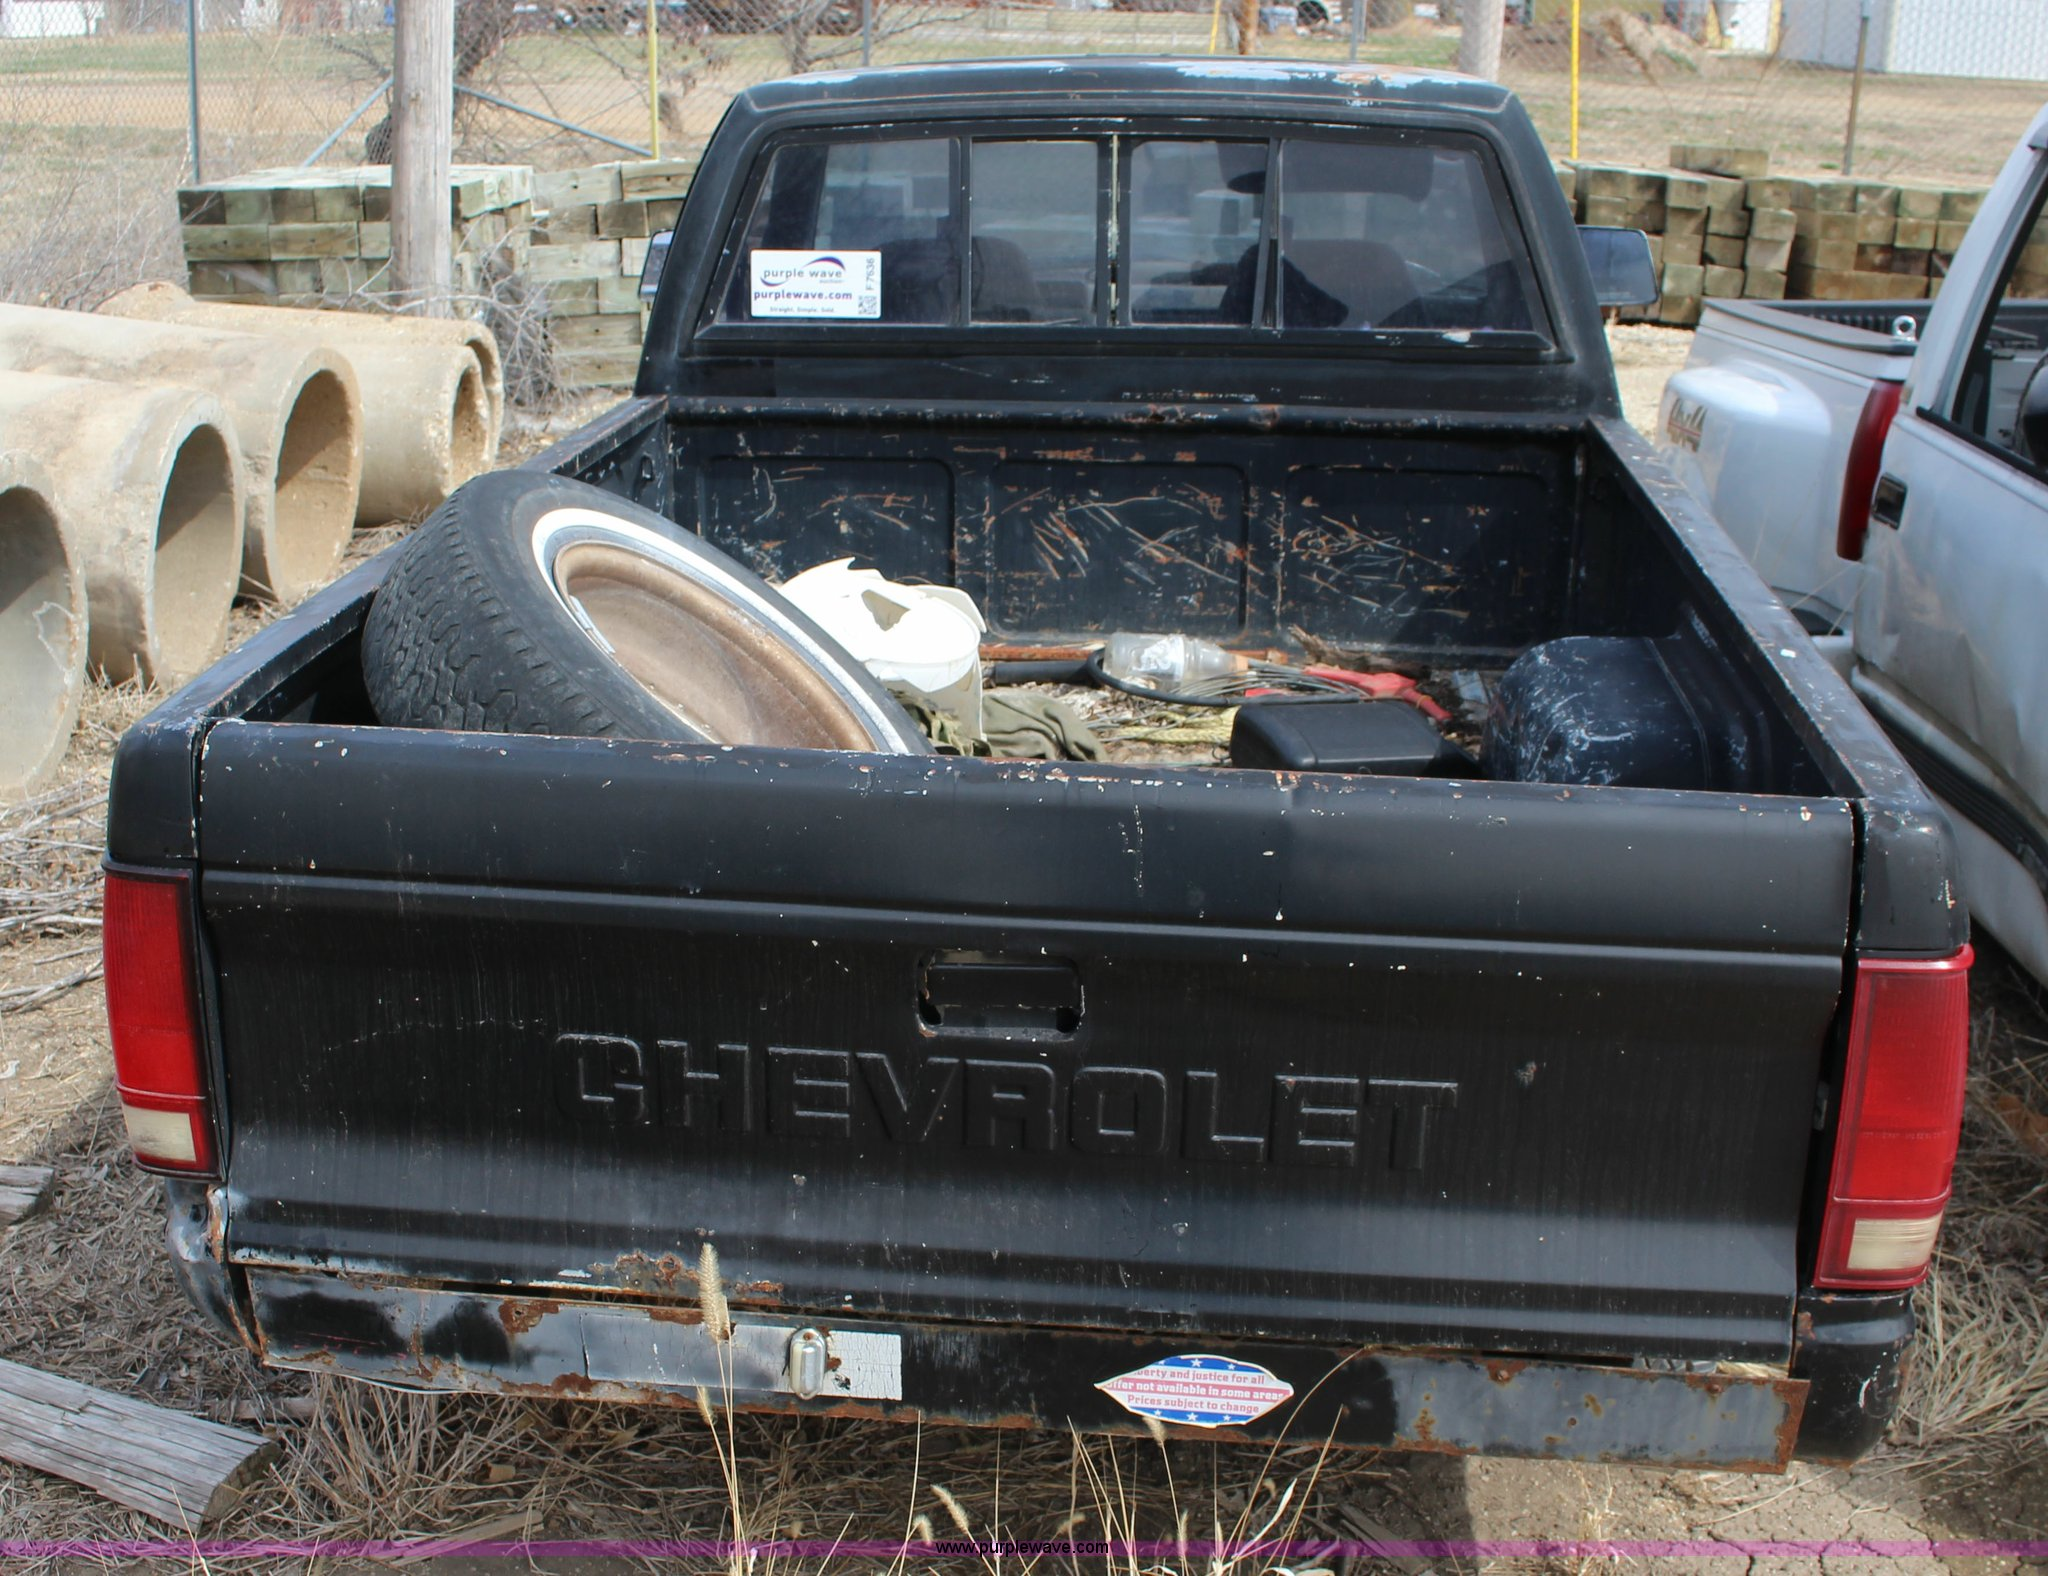 F7636D 1991 chevrolet s10 pickup truck item f7636 sold! may 5 g